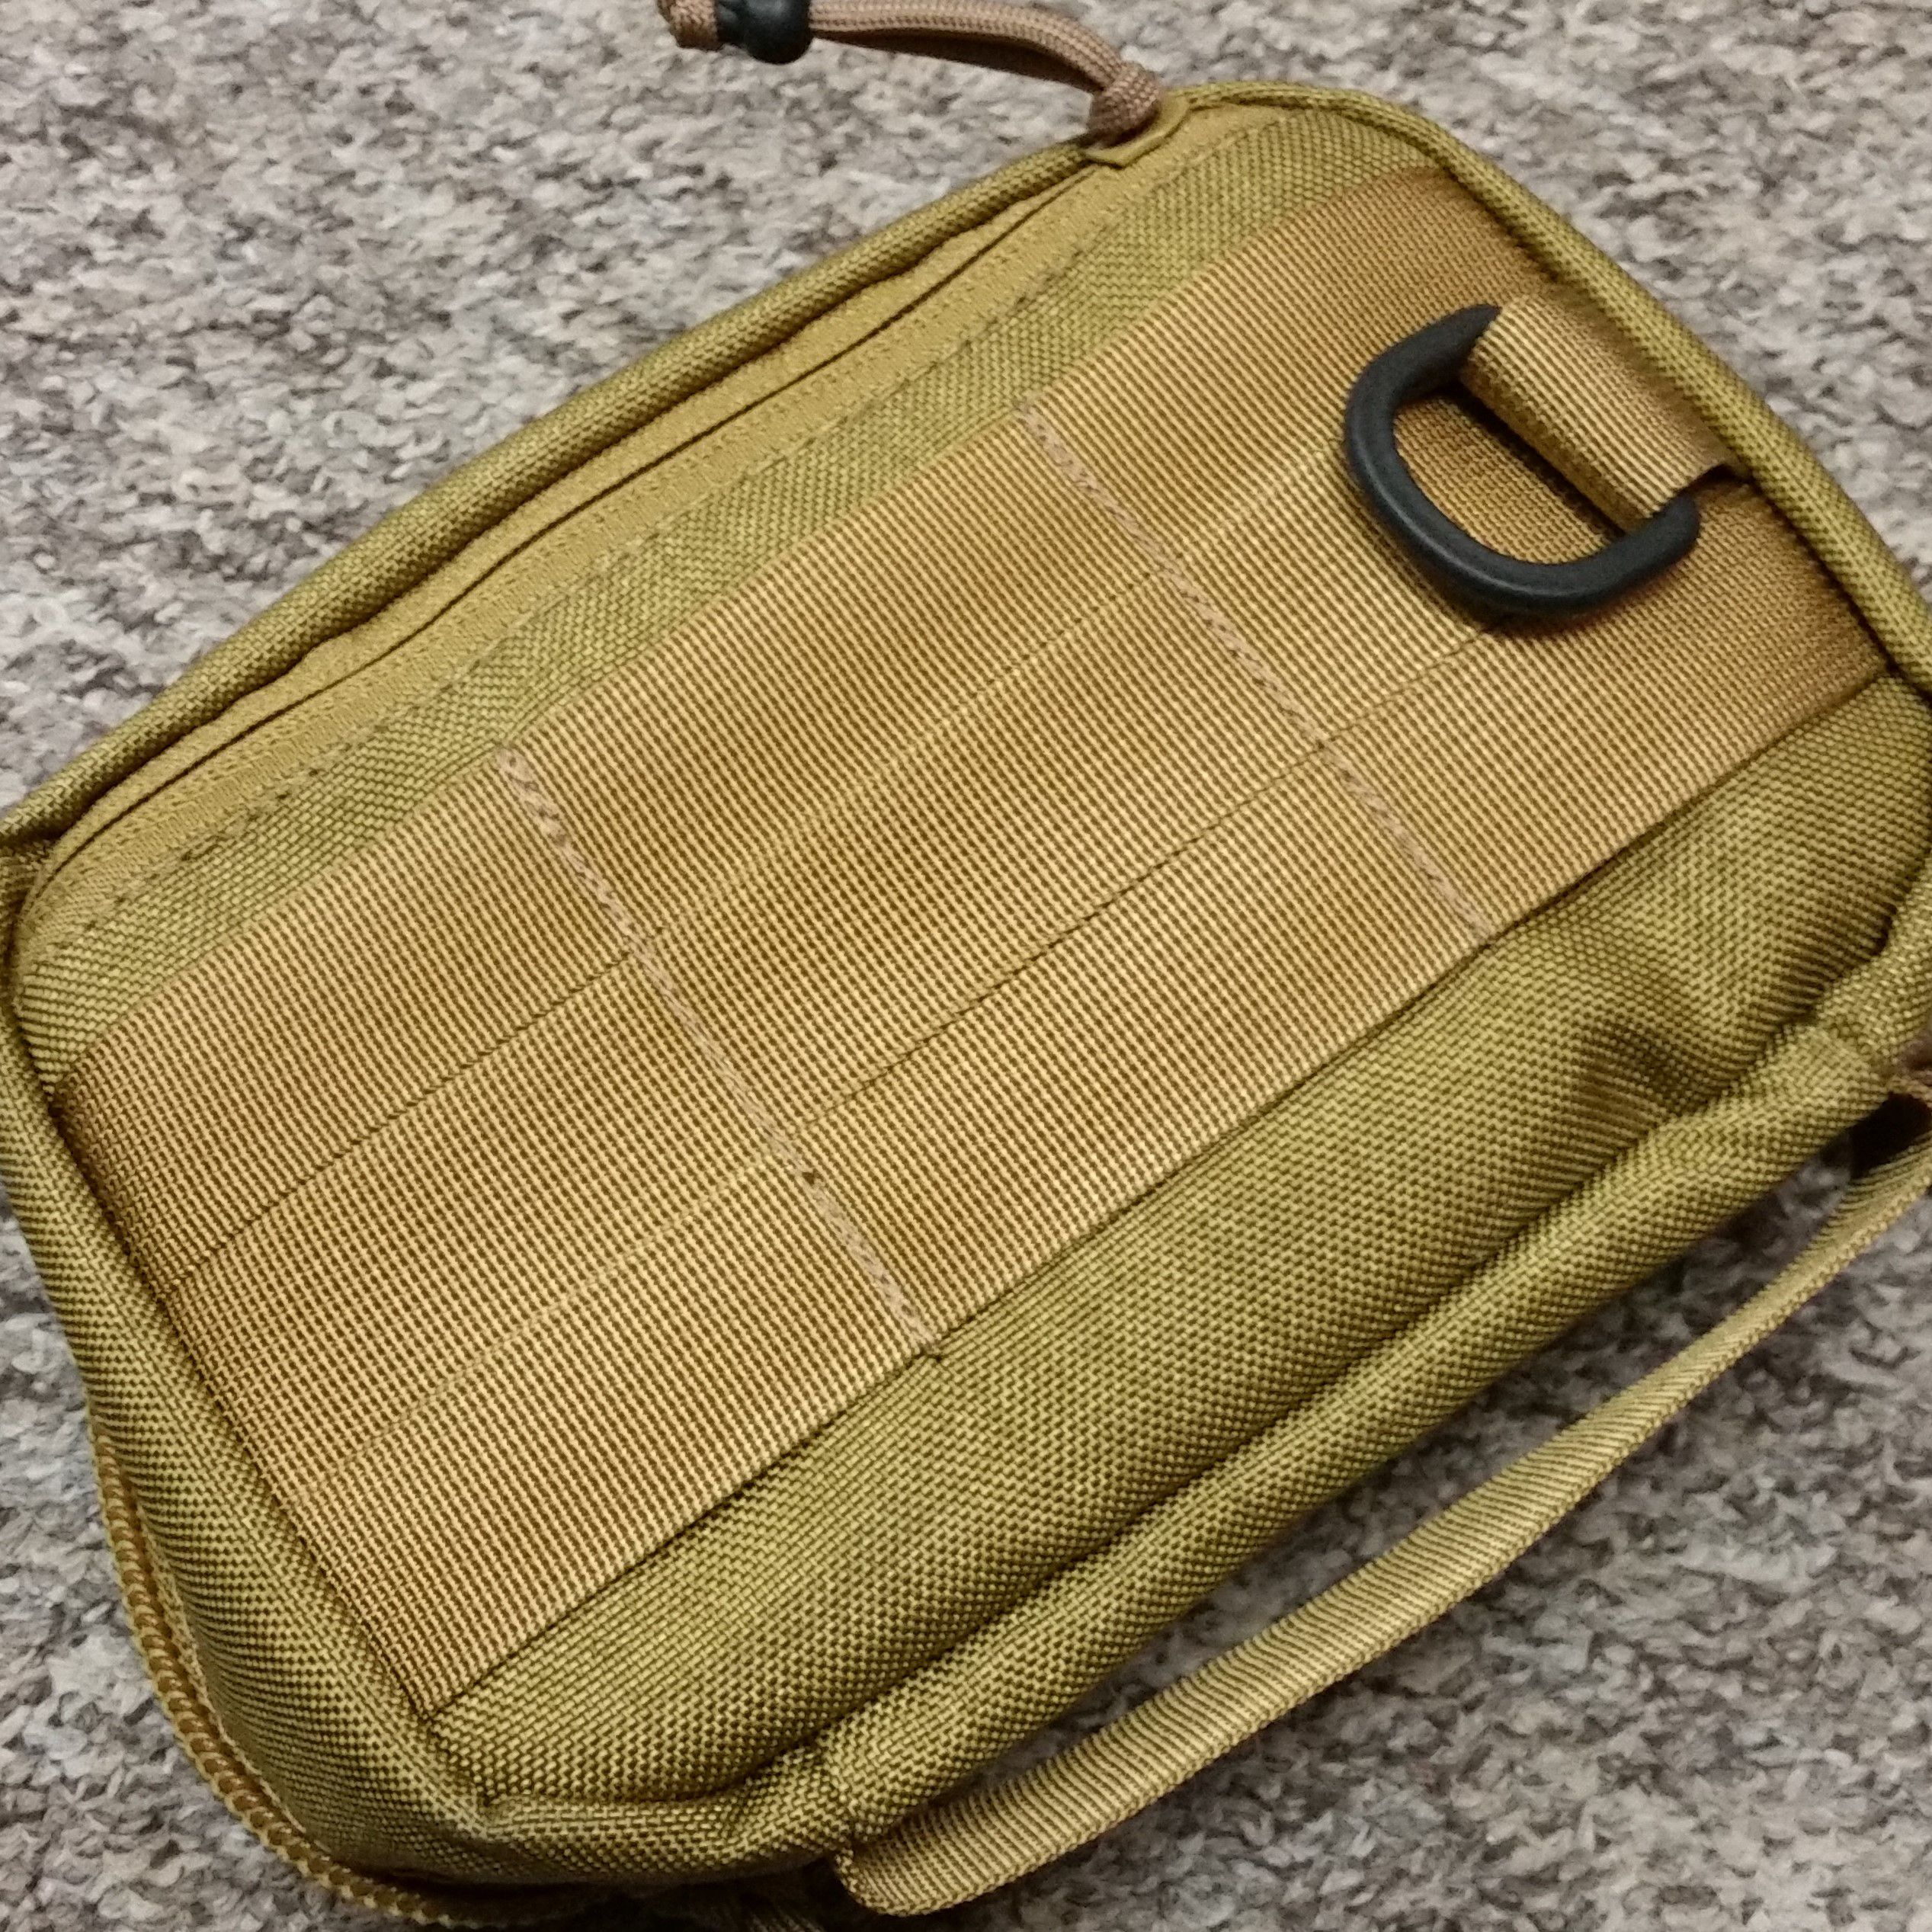 Molle rotated 90degree +5pln